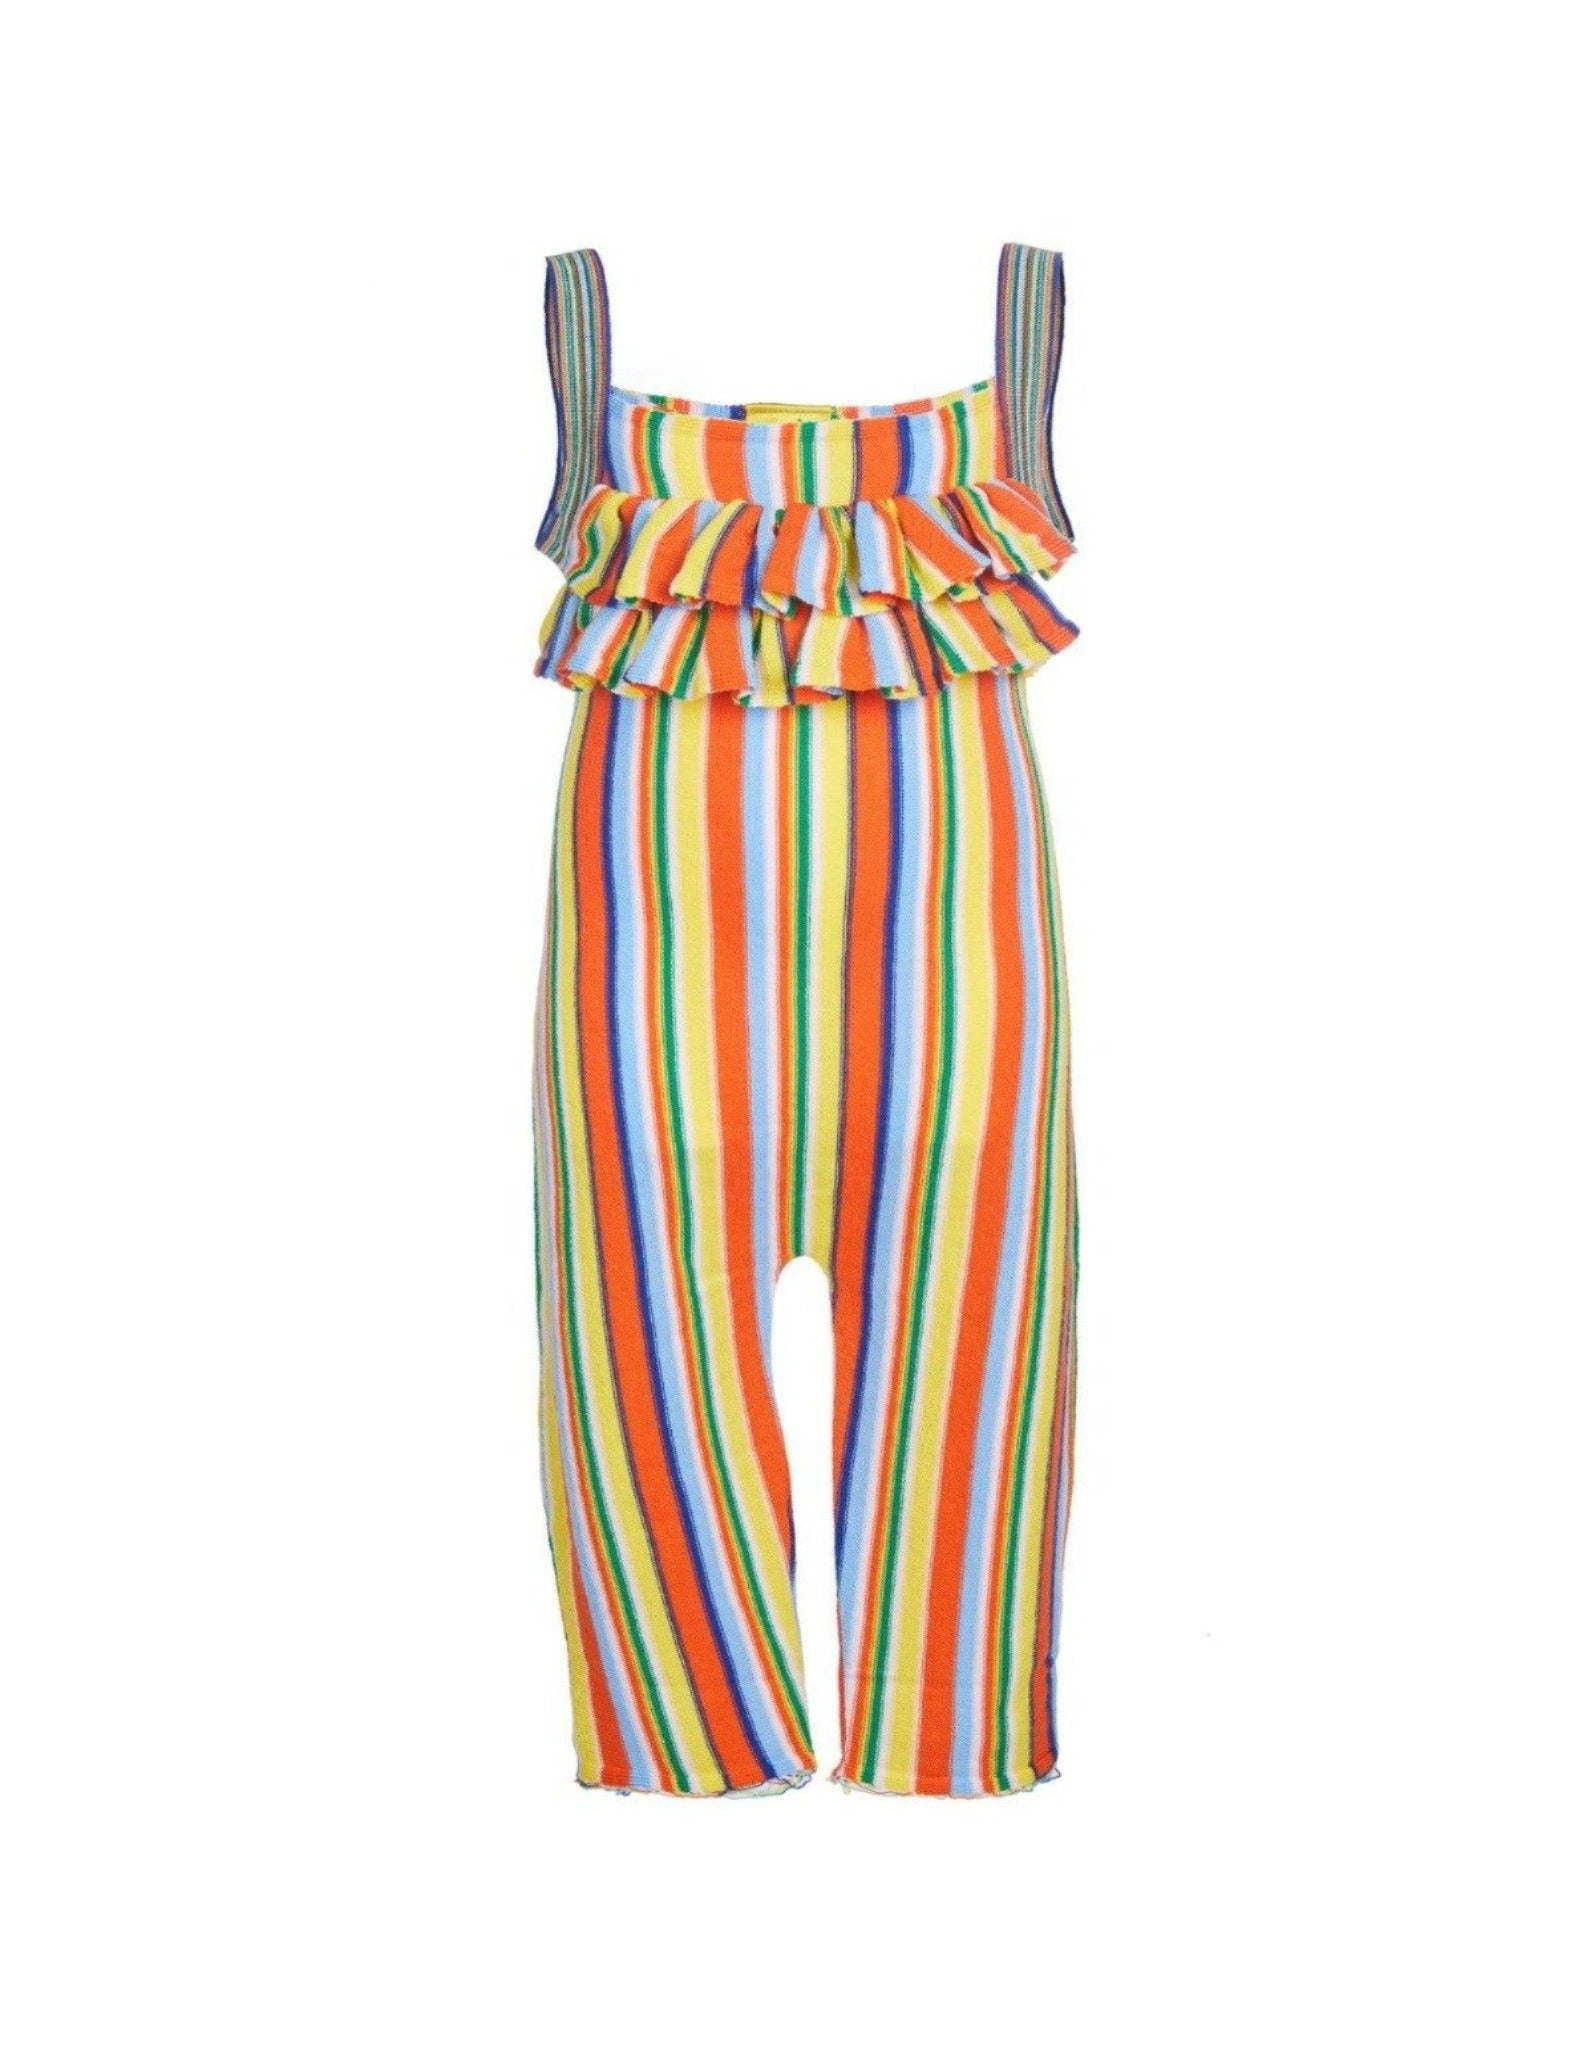 JUMPSUIT IN MULTI STRIPES